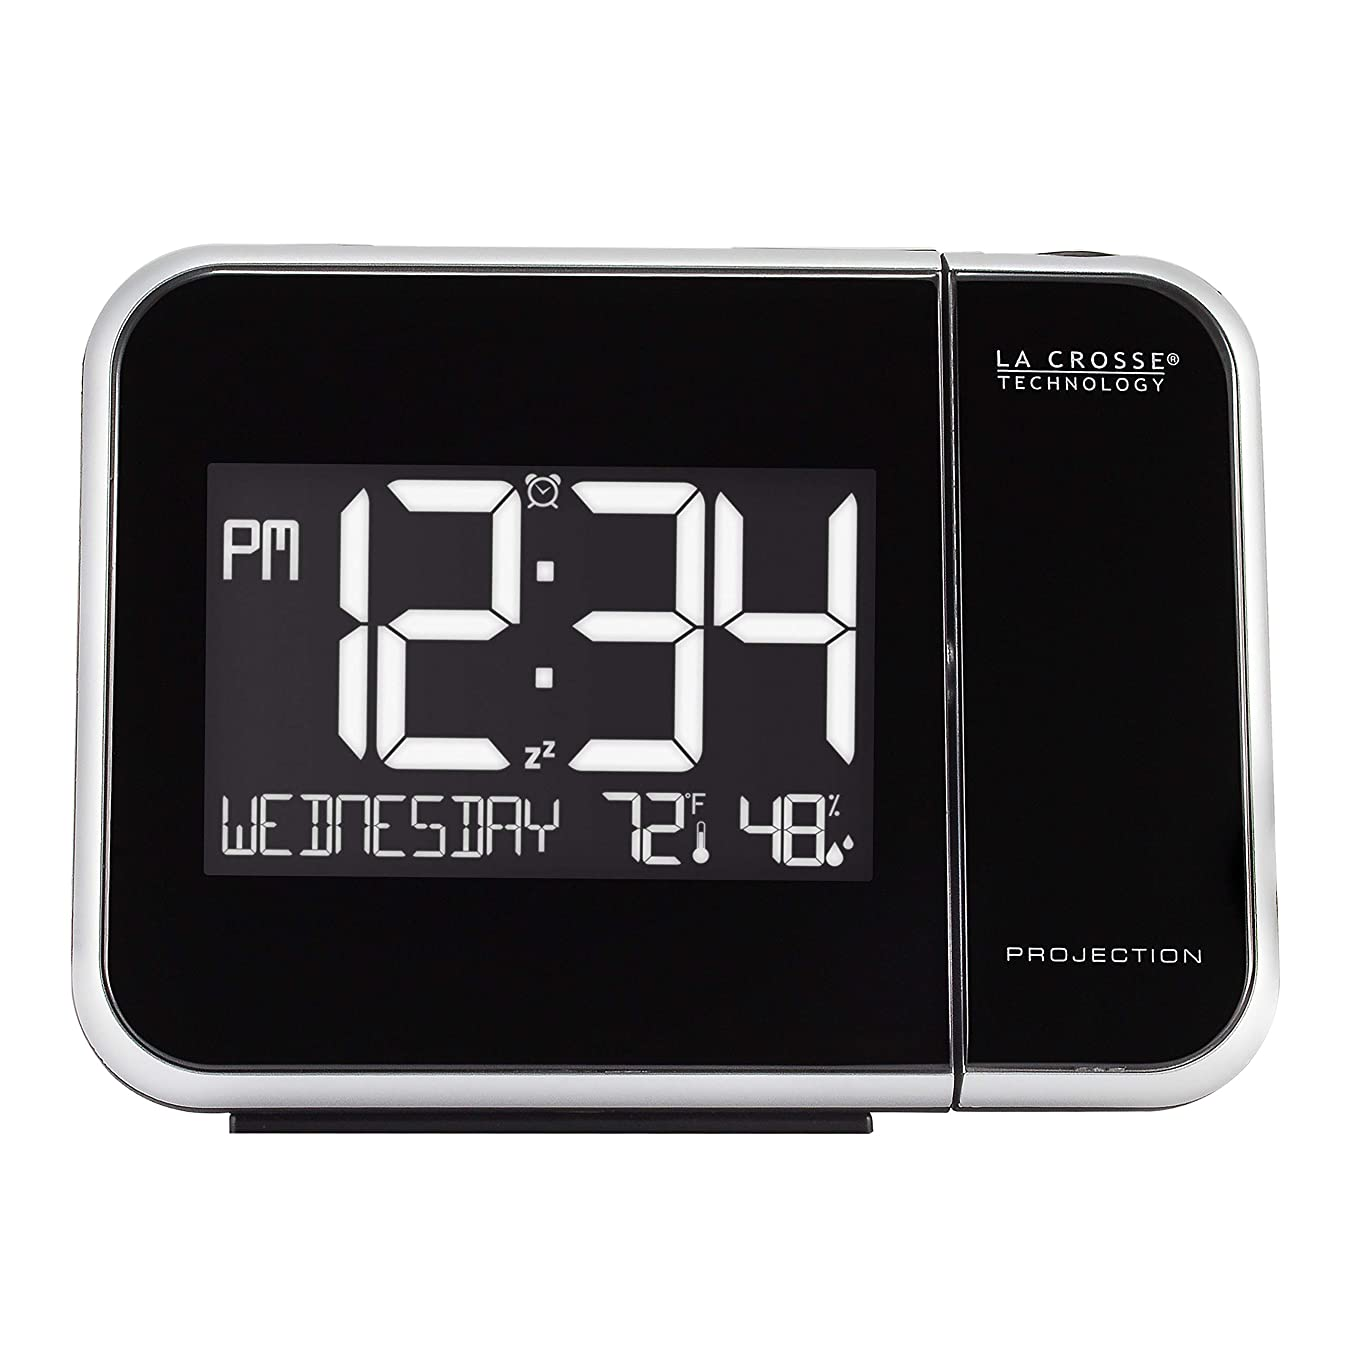 La Crosse Technology 616-1412 Projection Alarm Clock with Indoor Temperature